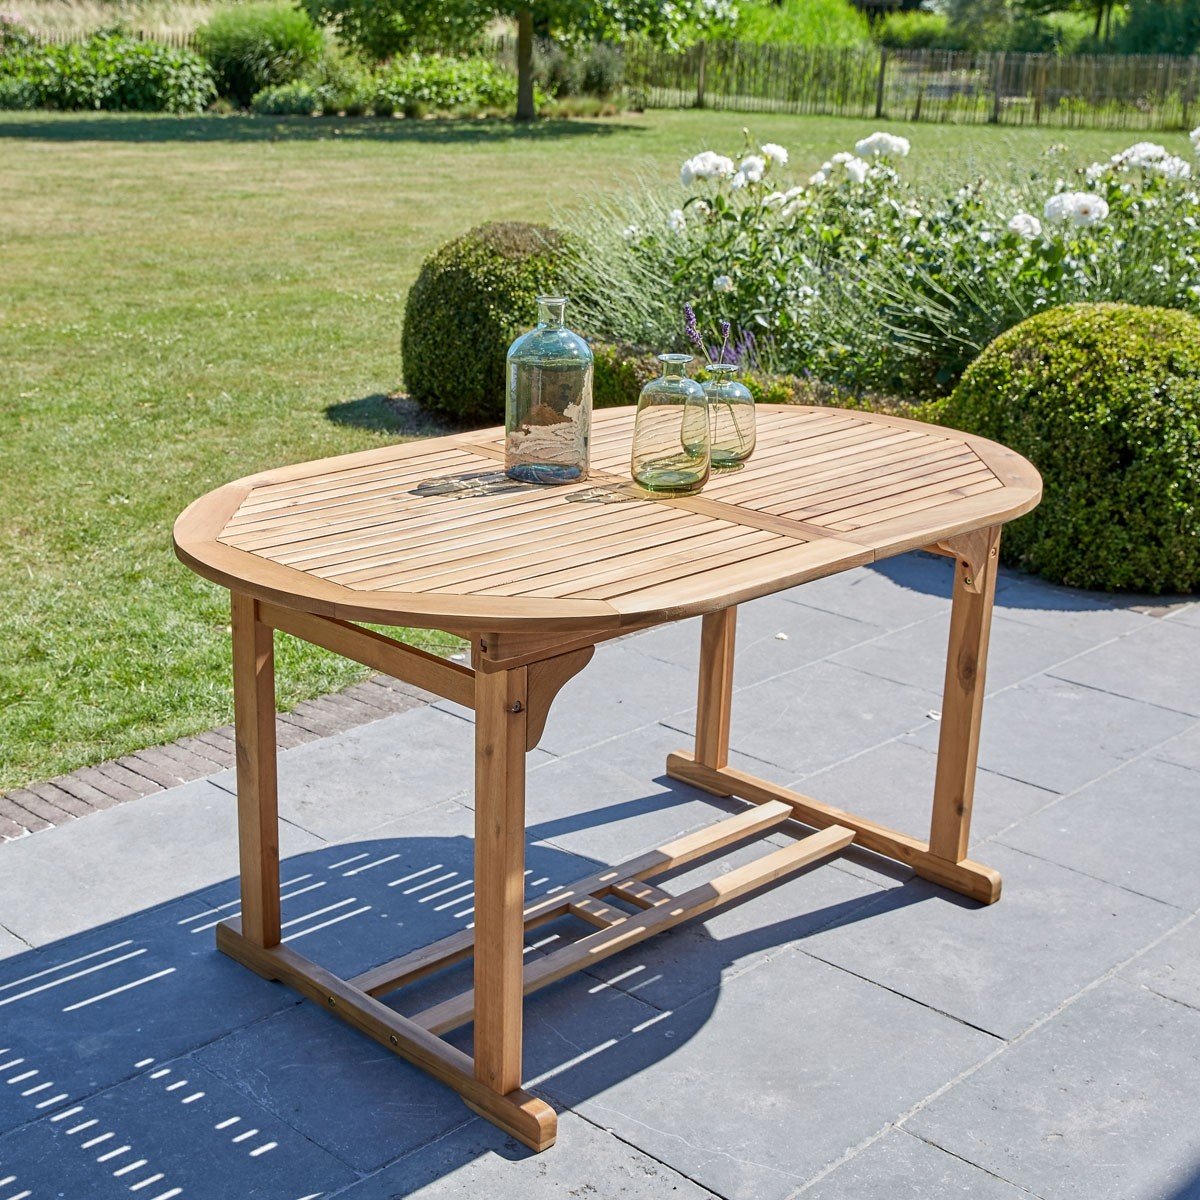 Table en bois d 39 acacia 6 8 places bois dessus bois dessous for Table 6 places